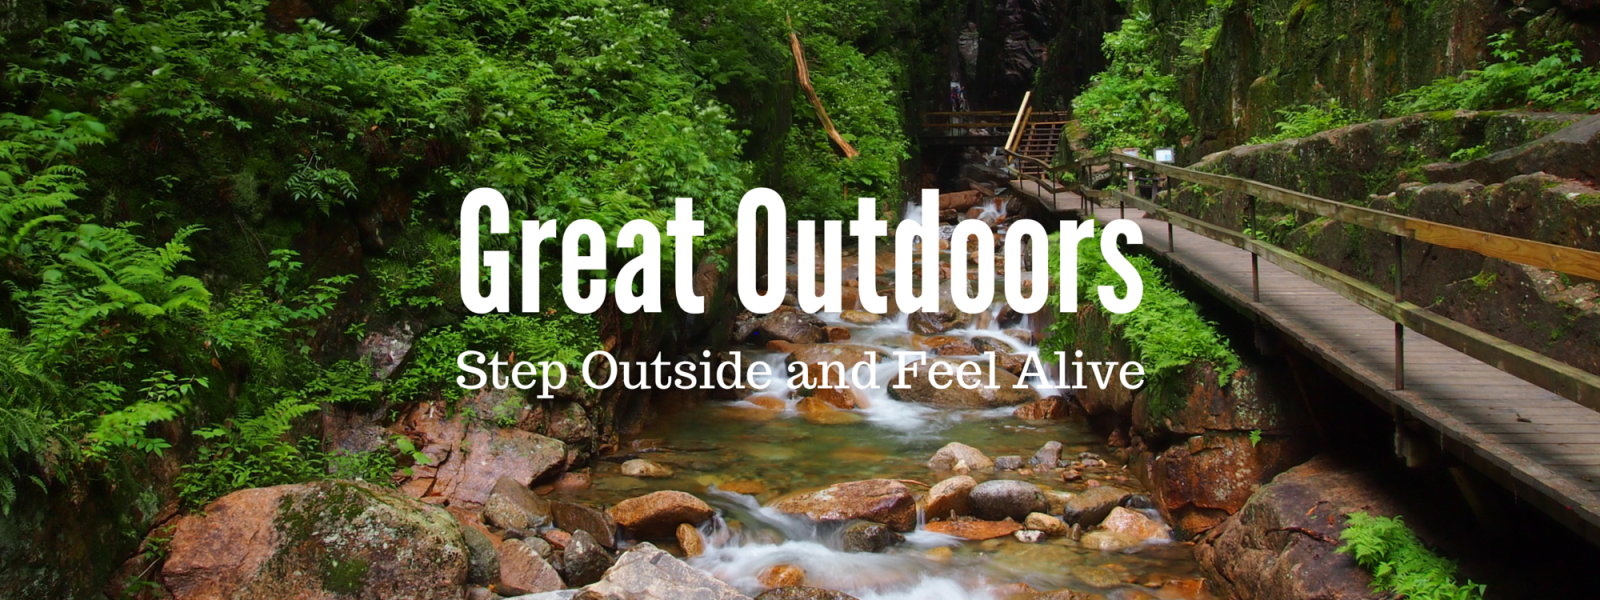 Great Outdoors - Travel. Experience. Live.